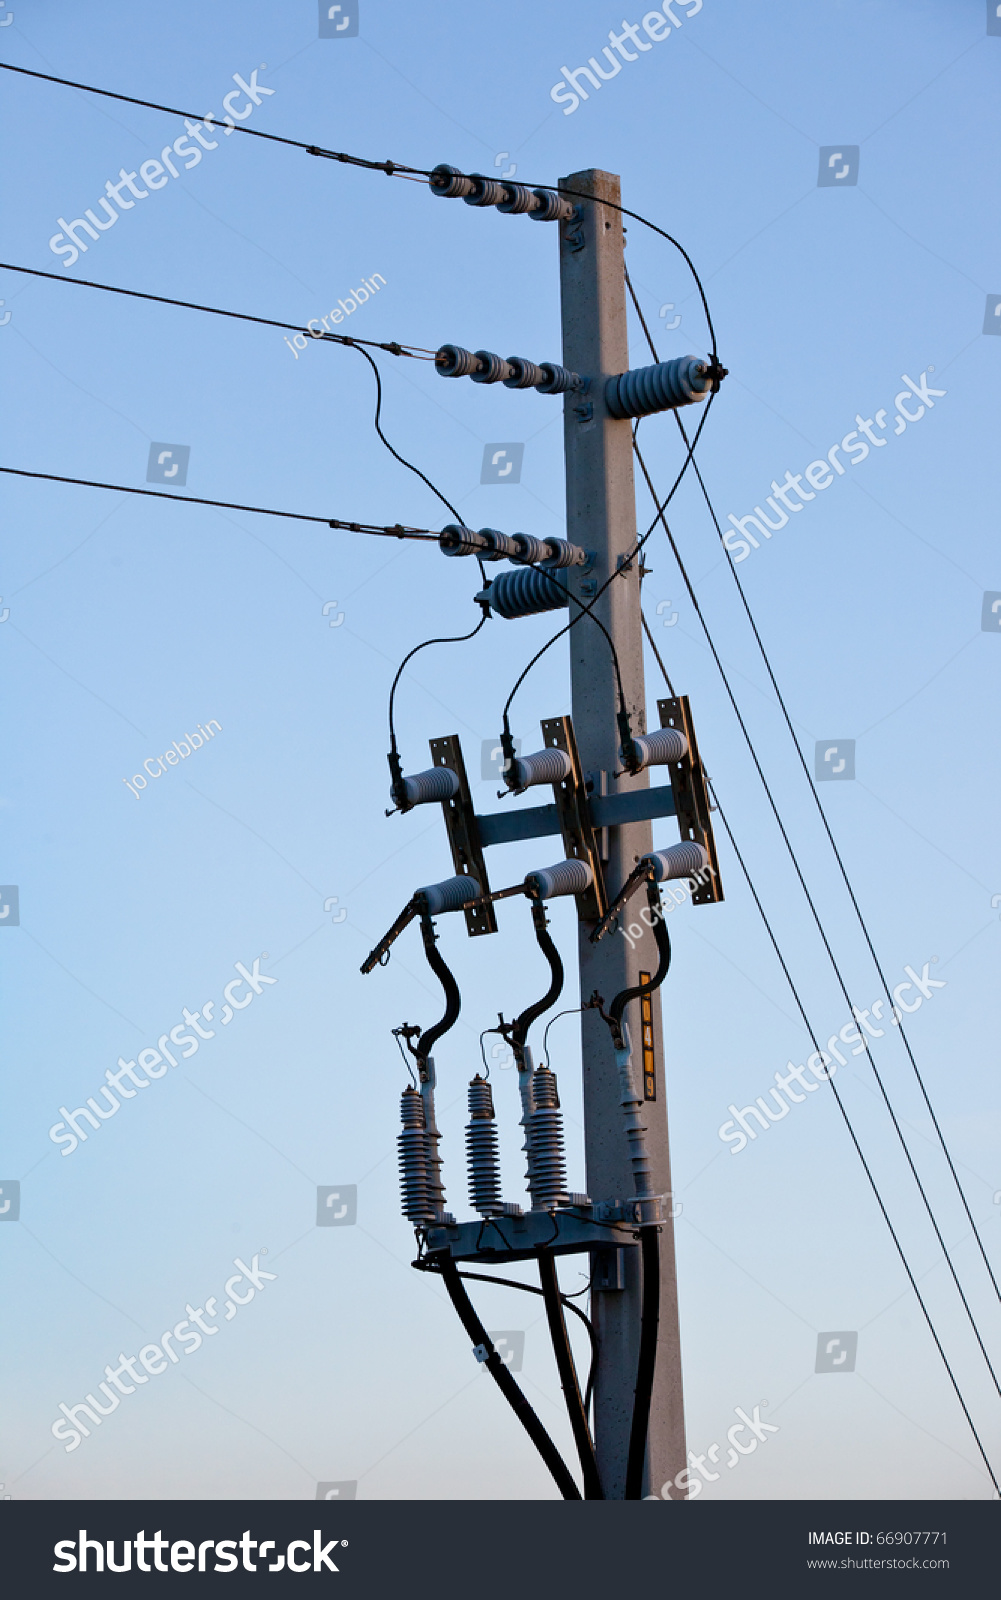 Power Telephone Pole Wires Cords Cables Stock Photo (Royalty Free ...